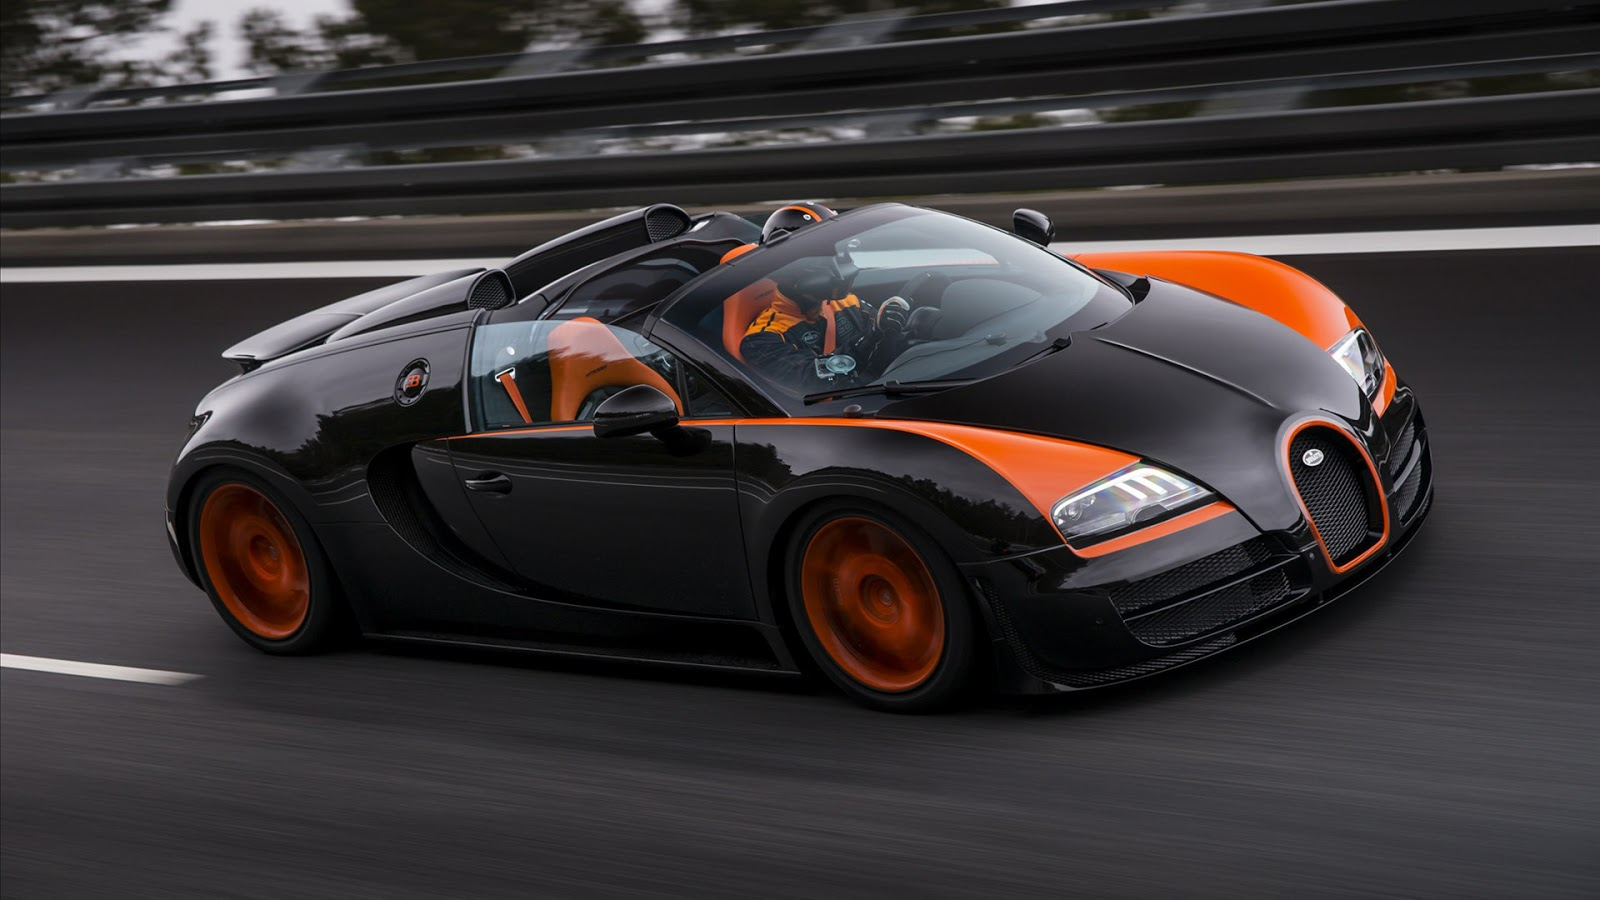 Hd Bugatti Supercar Wallpaper 2 - SA Wallpapers